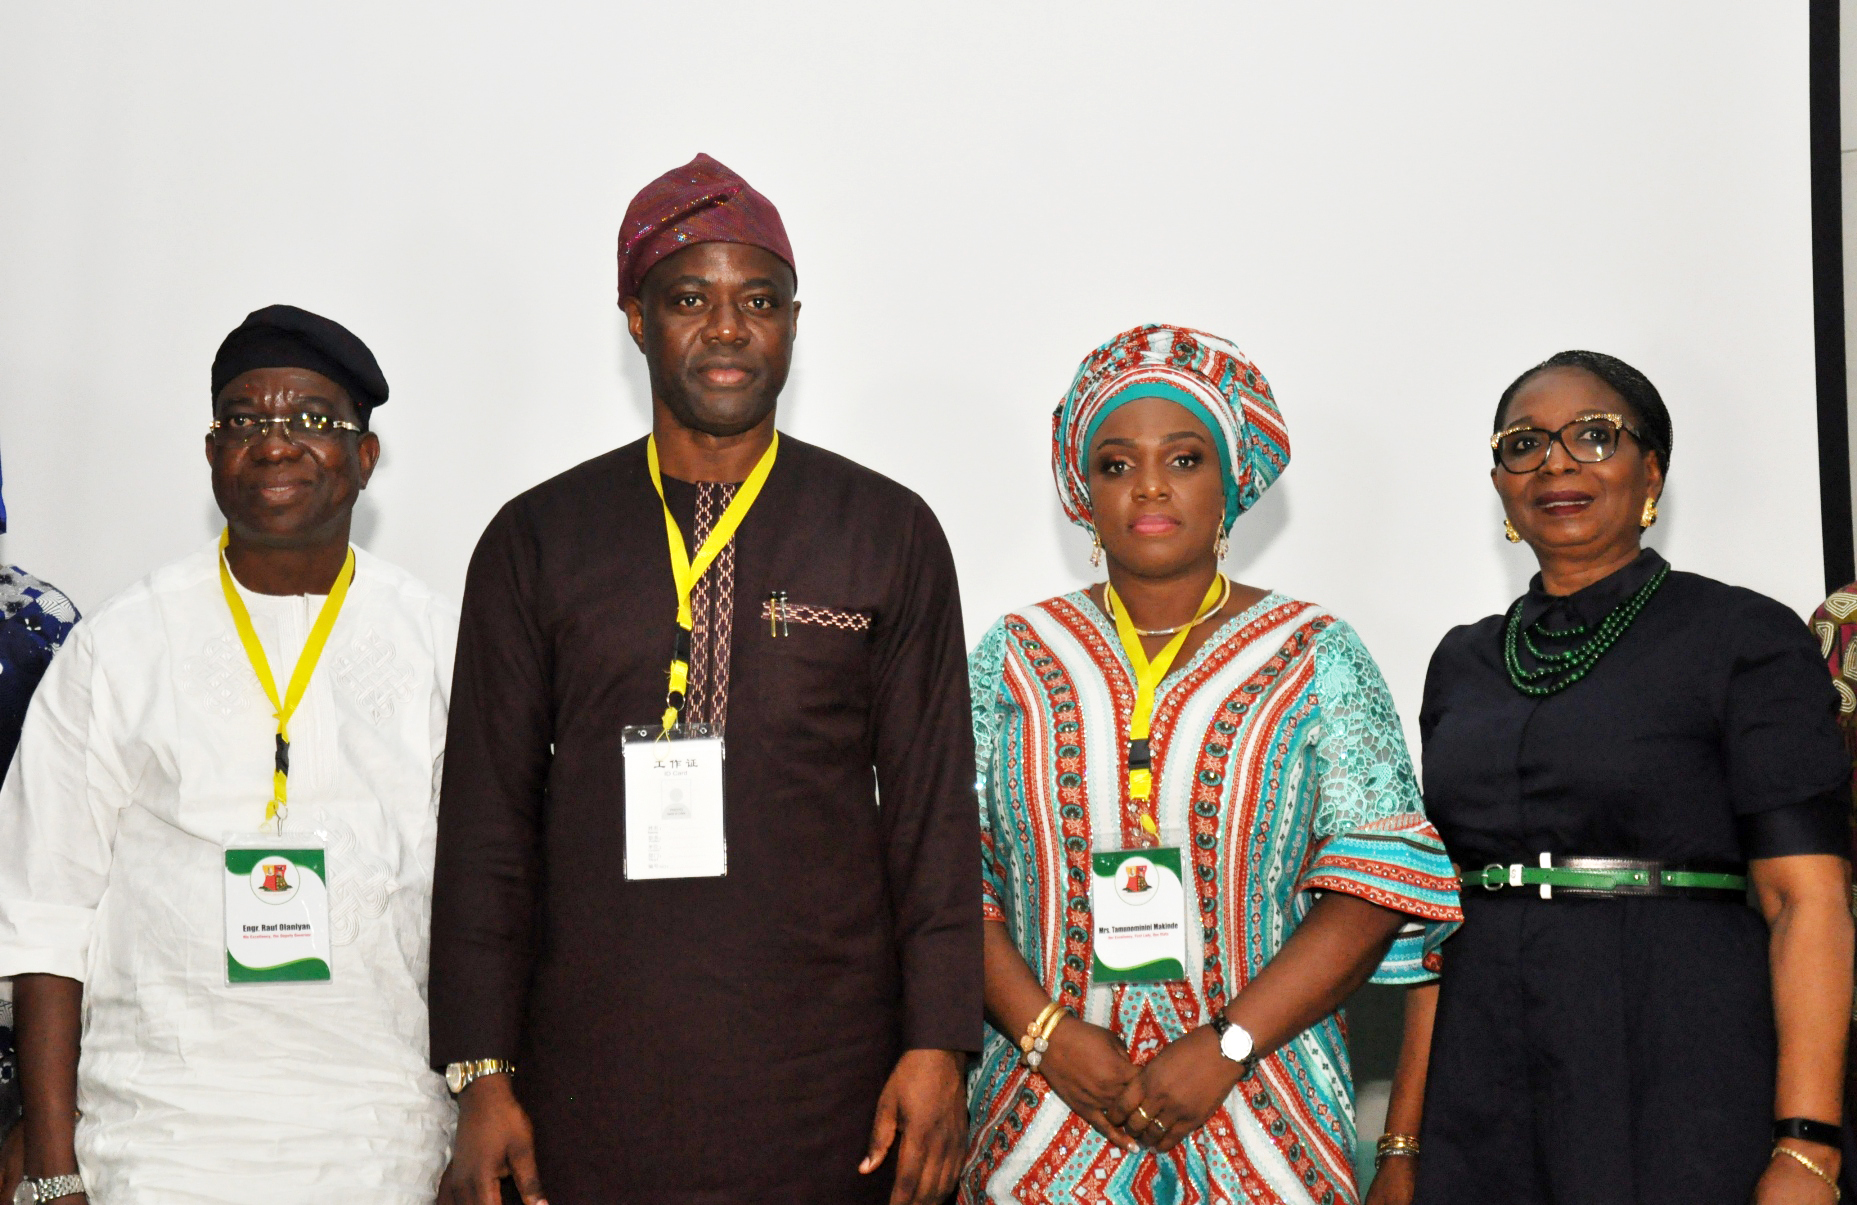 Retreat 2: Oyo State Governor, Engr Seyi Makinde (middle) his wife, Tamunominini (second left); Deputy Governor, Engr Rauf Olaniyan (second left) his wife, Bolanle (left) and guest speaker and Chairperson, First Bank of Nigeria, Dr (Mrs) Ibukun Awosika during the Oyo State Executive Retreat held at IITA, Ibadan. PHOTO: Oyo State Government.